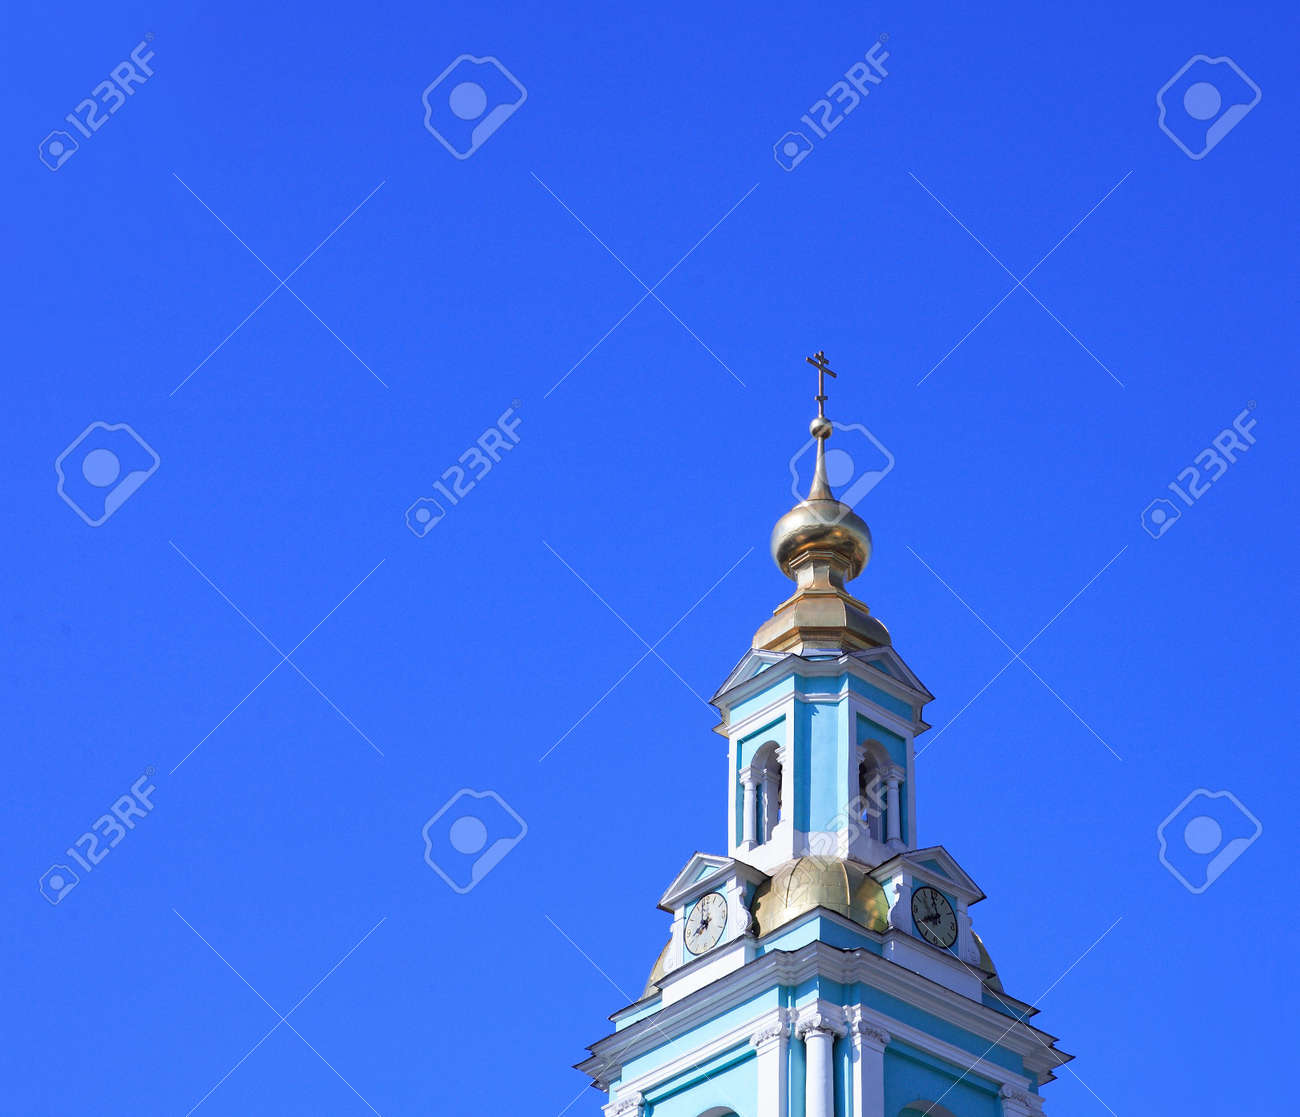 chapel tower in city center on sky background Stock Photo - 1744204